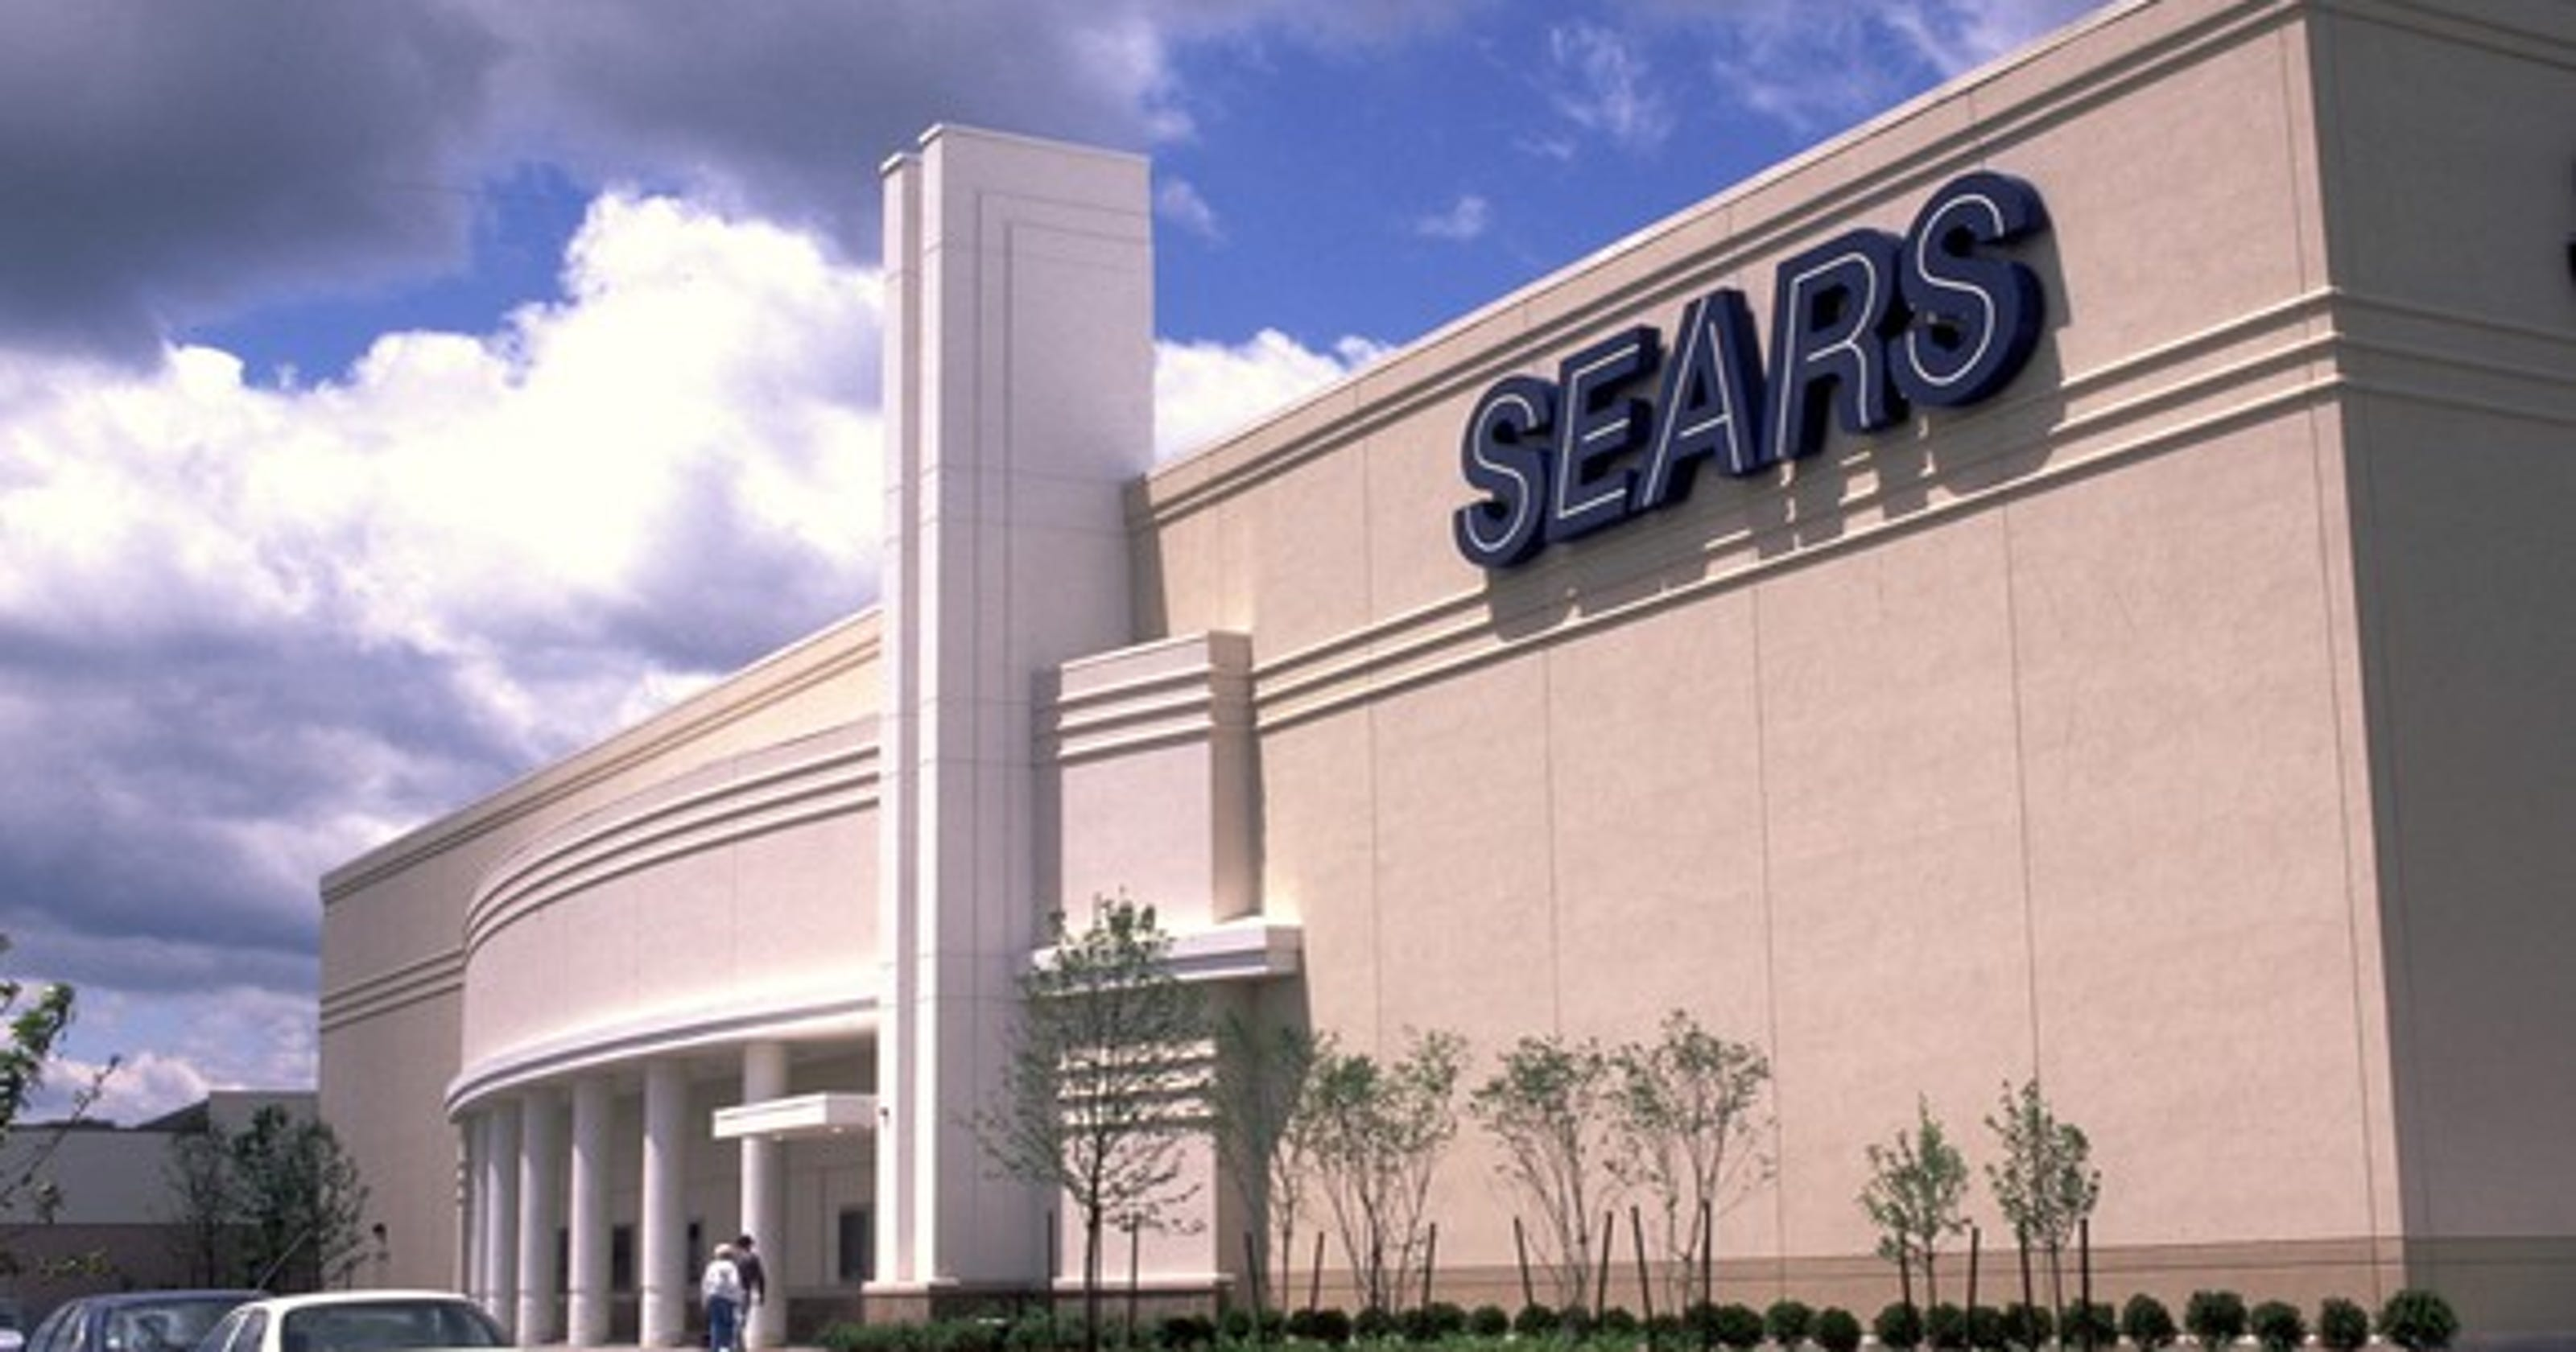 faa1ed831c Naples location is among 46 Sears or Kmart stores to close in November